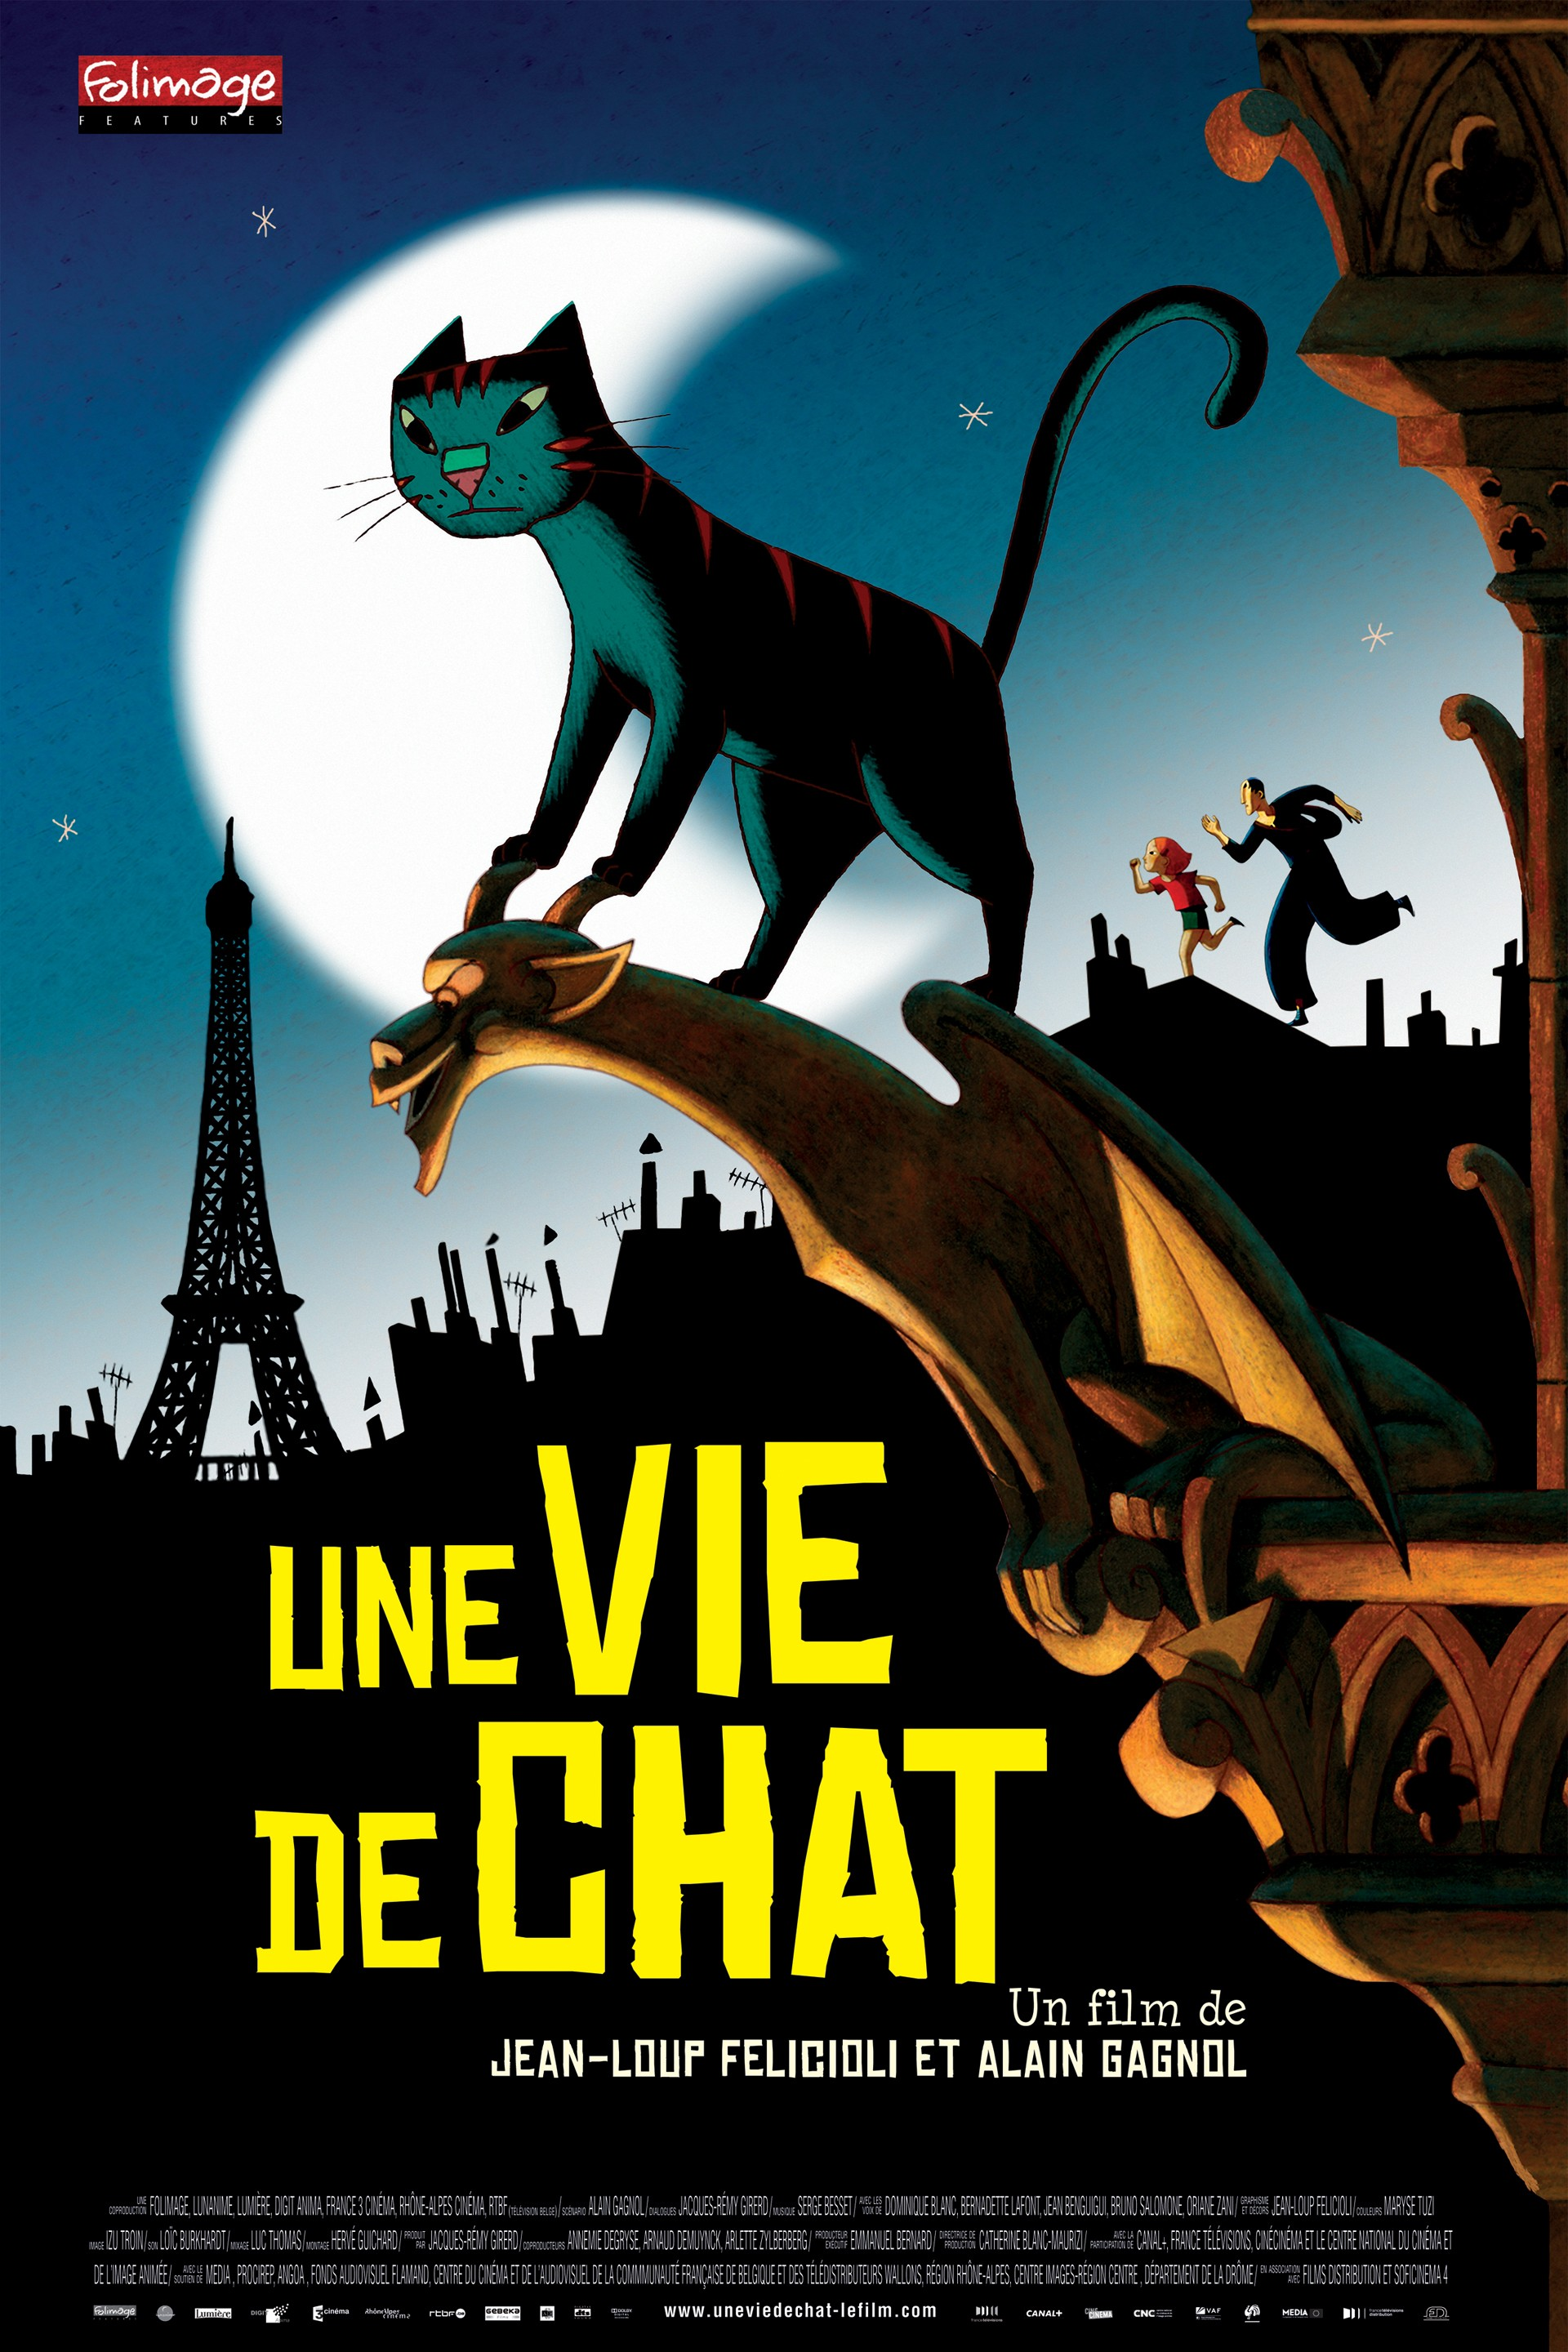 Une vie de chat  [BRRIP-AC3] [FRENCH] [MULTI]